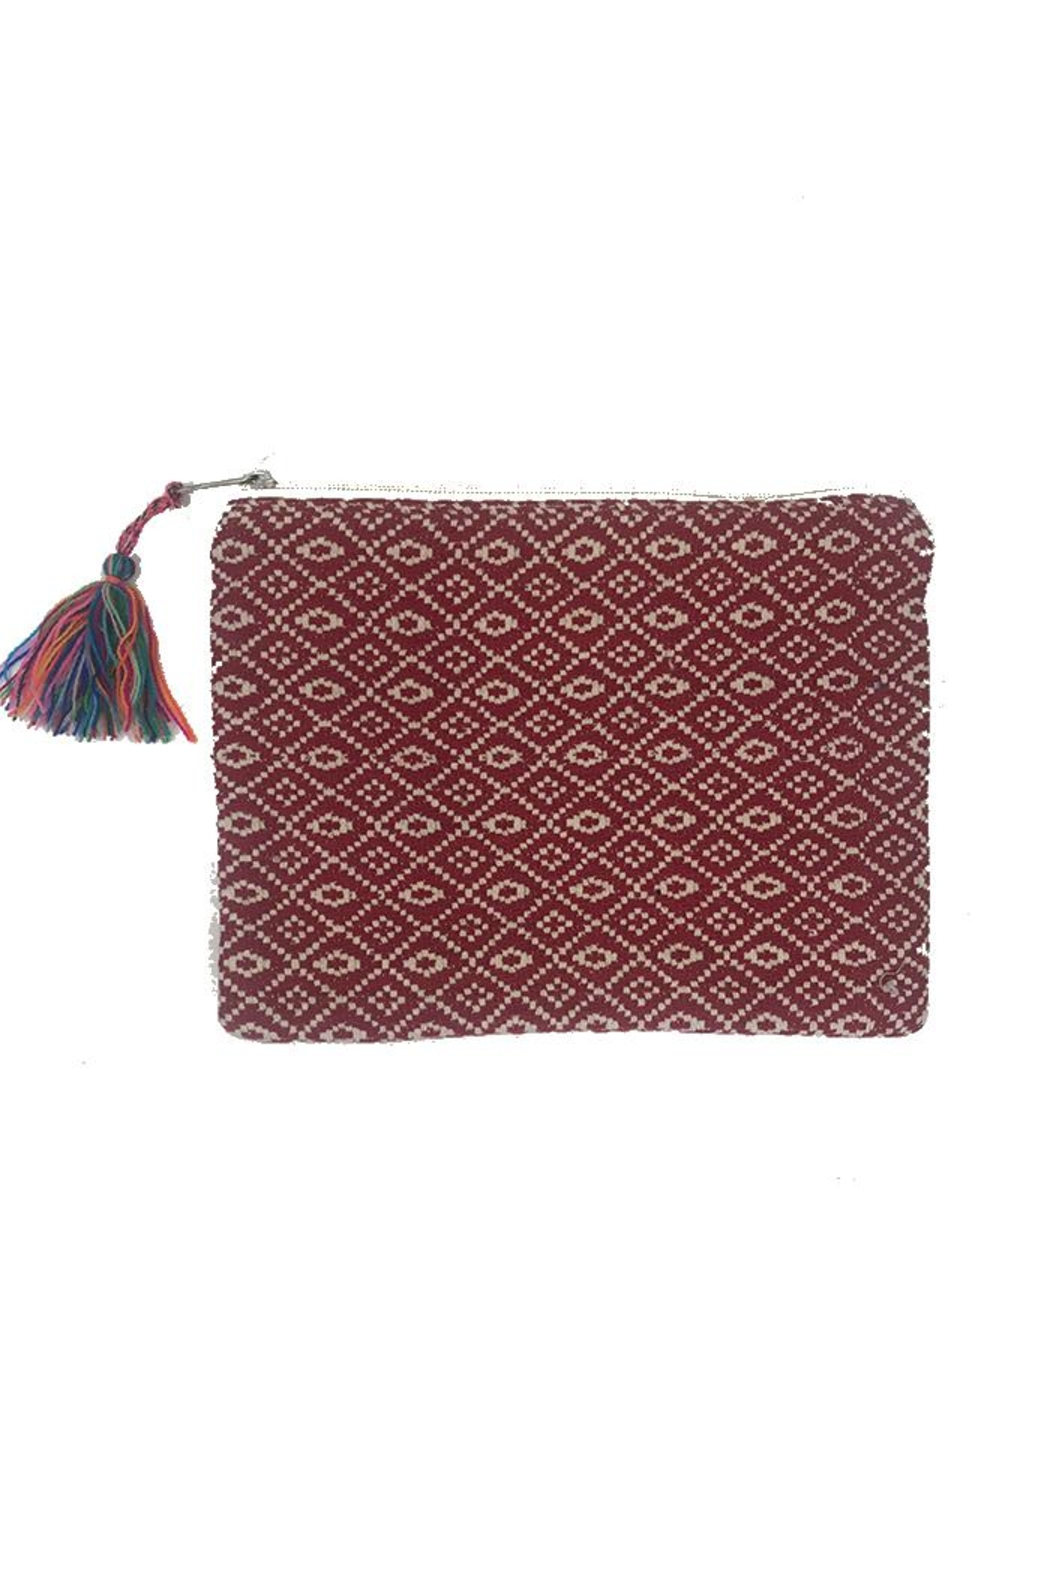 America & Beyond Multi-Colored Clutches - Main Image